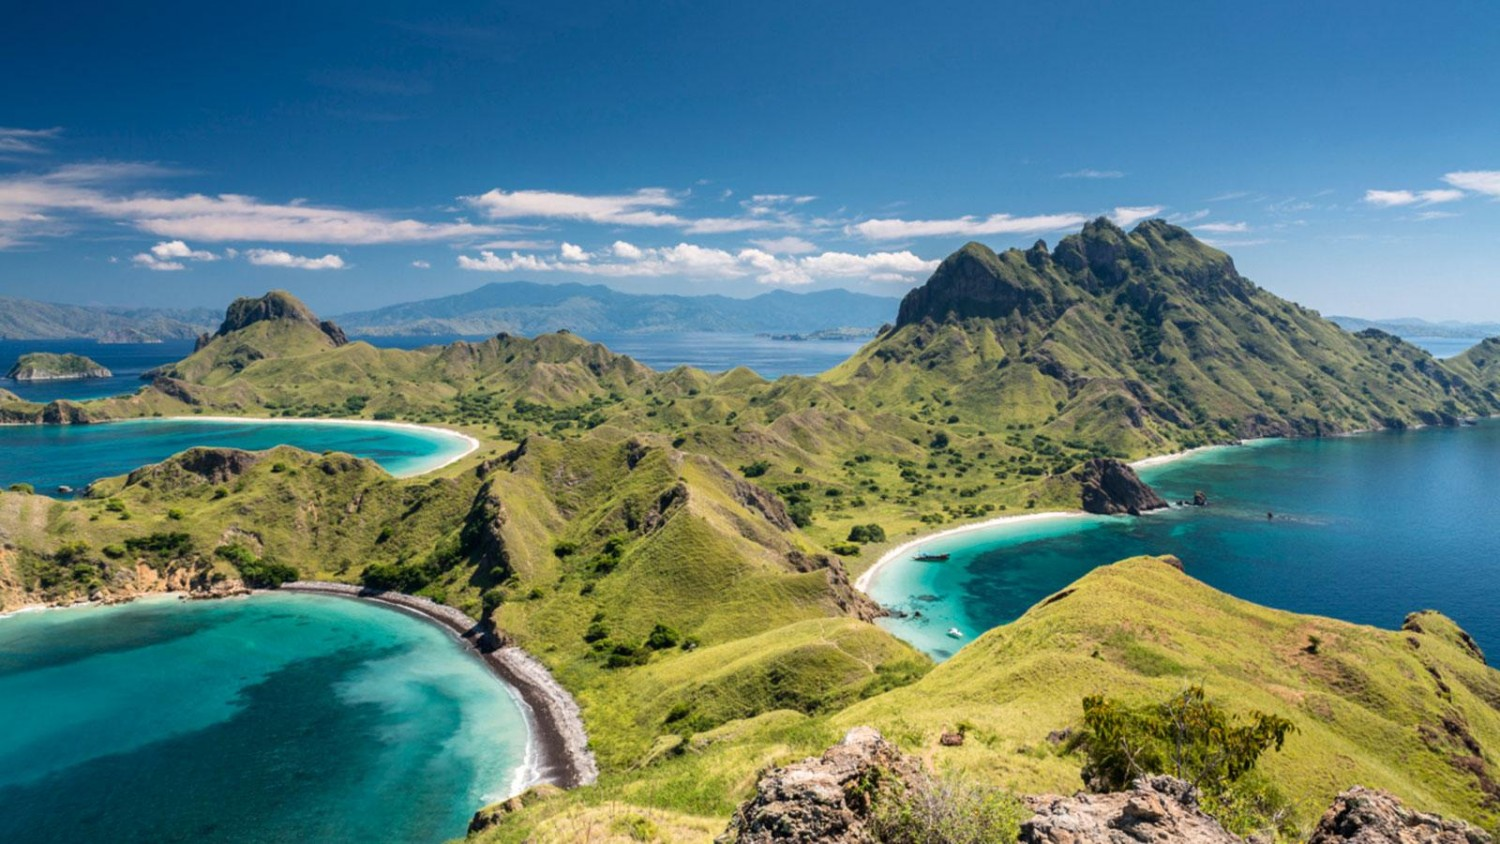 8 days exploring Komodo National Park by Superyacht - Lee ...